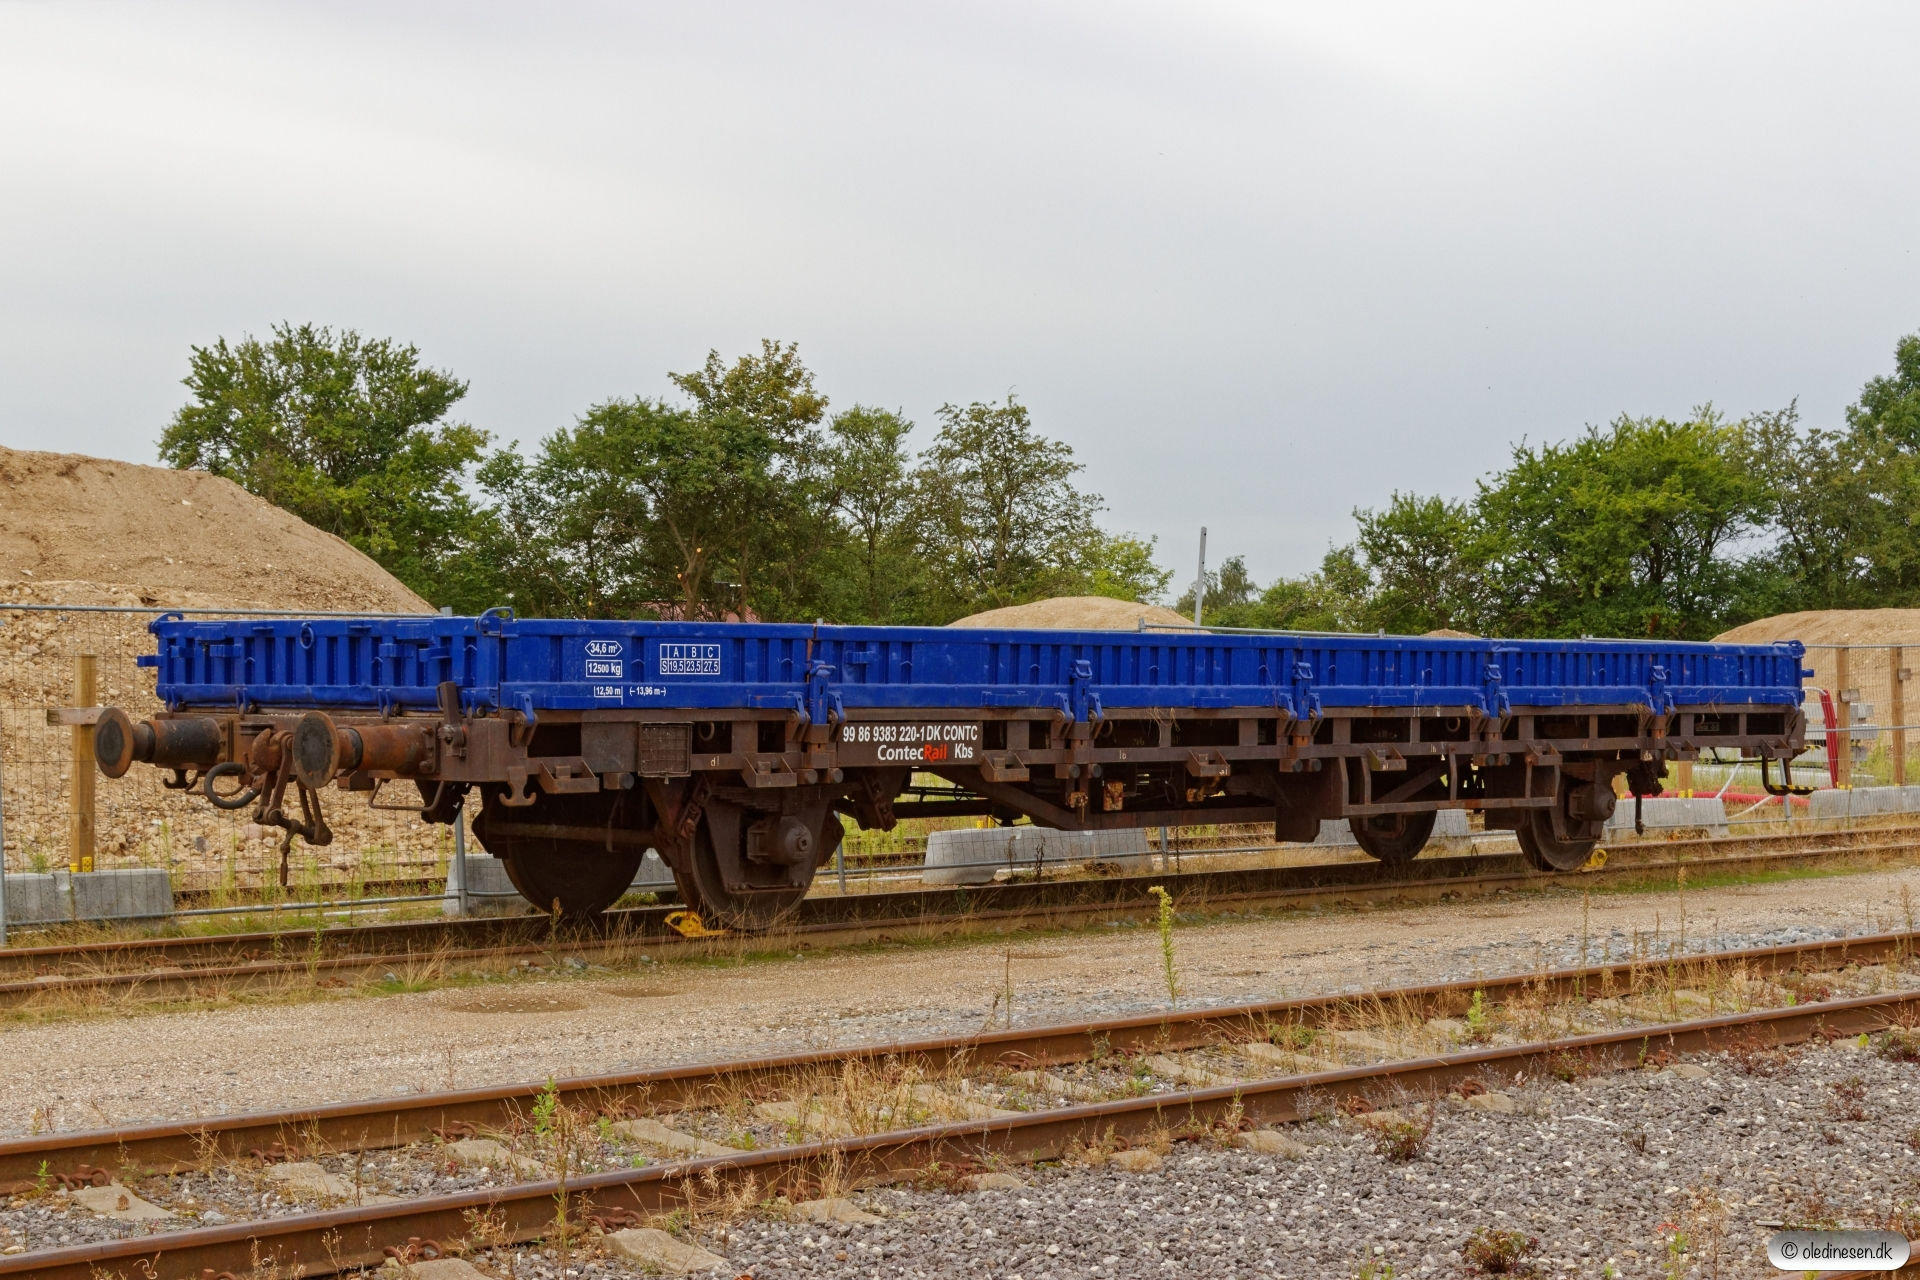 CONTC Kbs 99 86 9383 220-1 (ex. Kbs 01 86 333 0 220-5). Ringsted 15.08.2019.